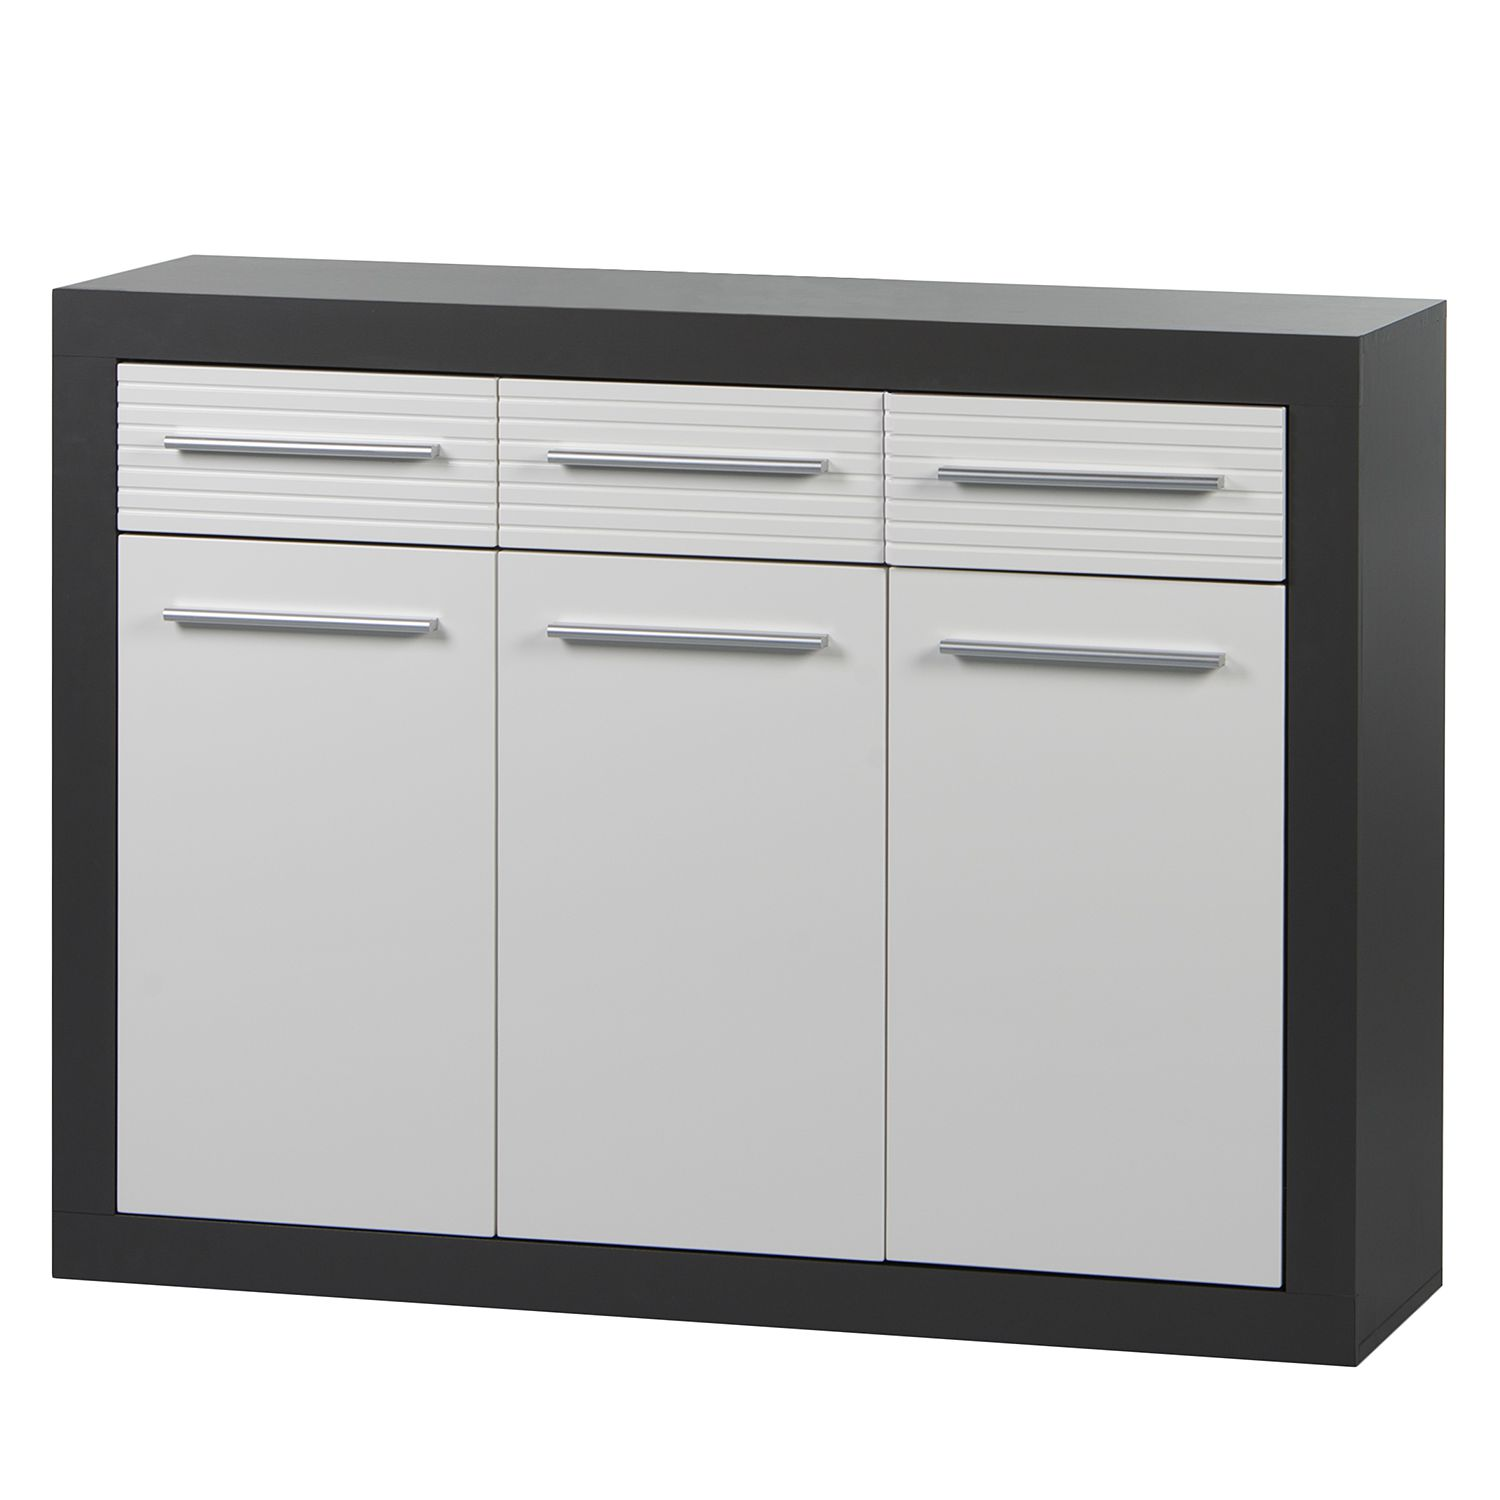 Dressoir Sonana - hoogglans wit/antracietkleurig, roomscape